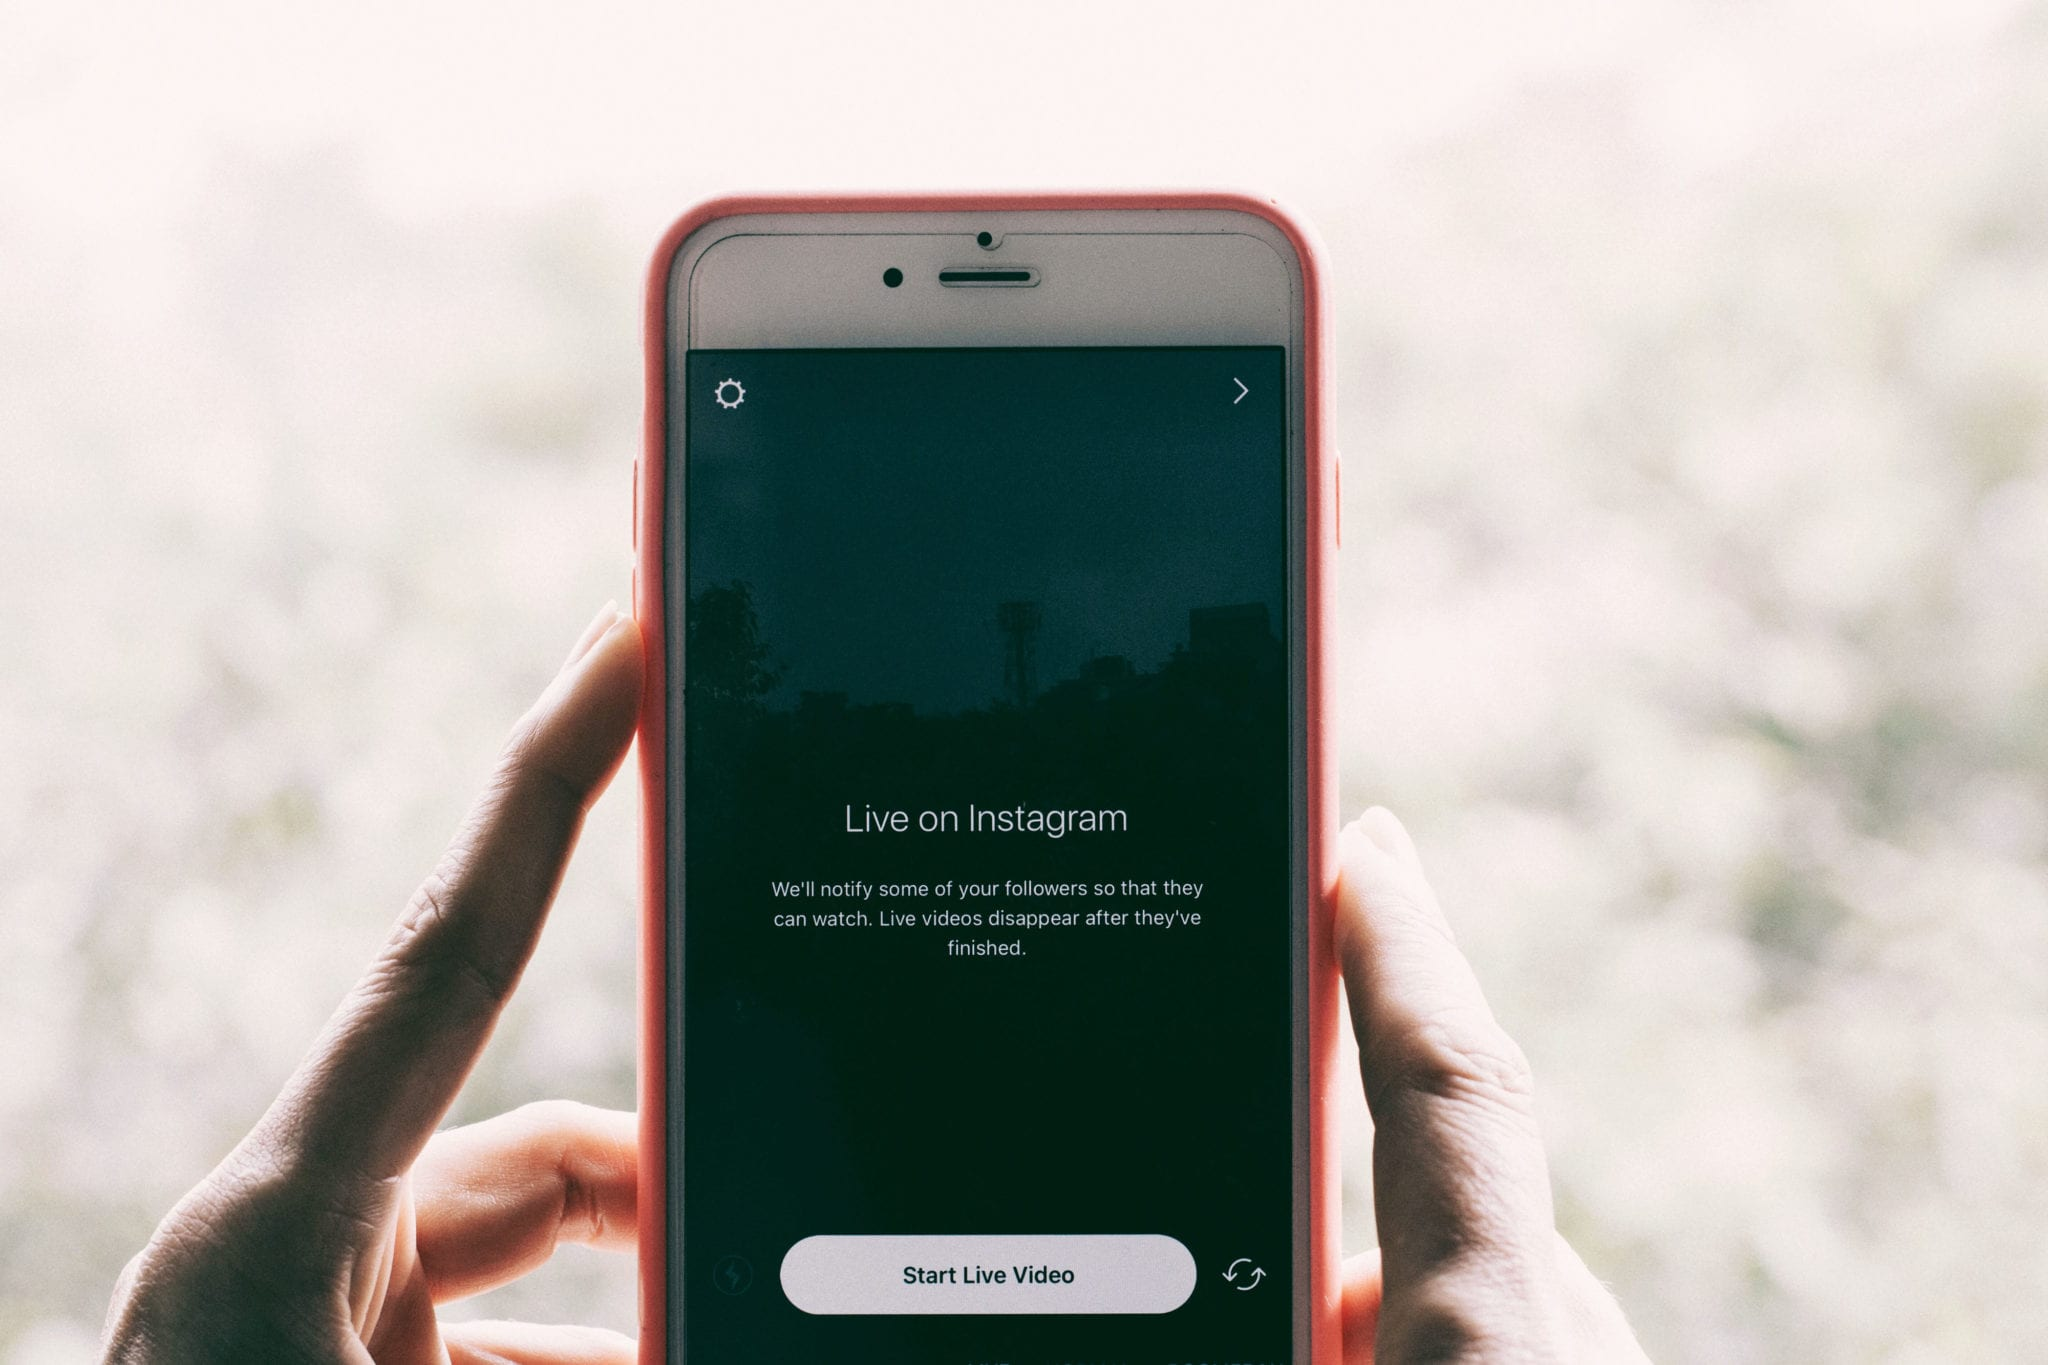 Live Content: Going Live on Instagram